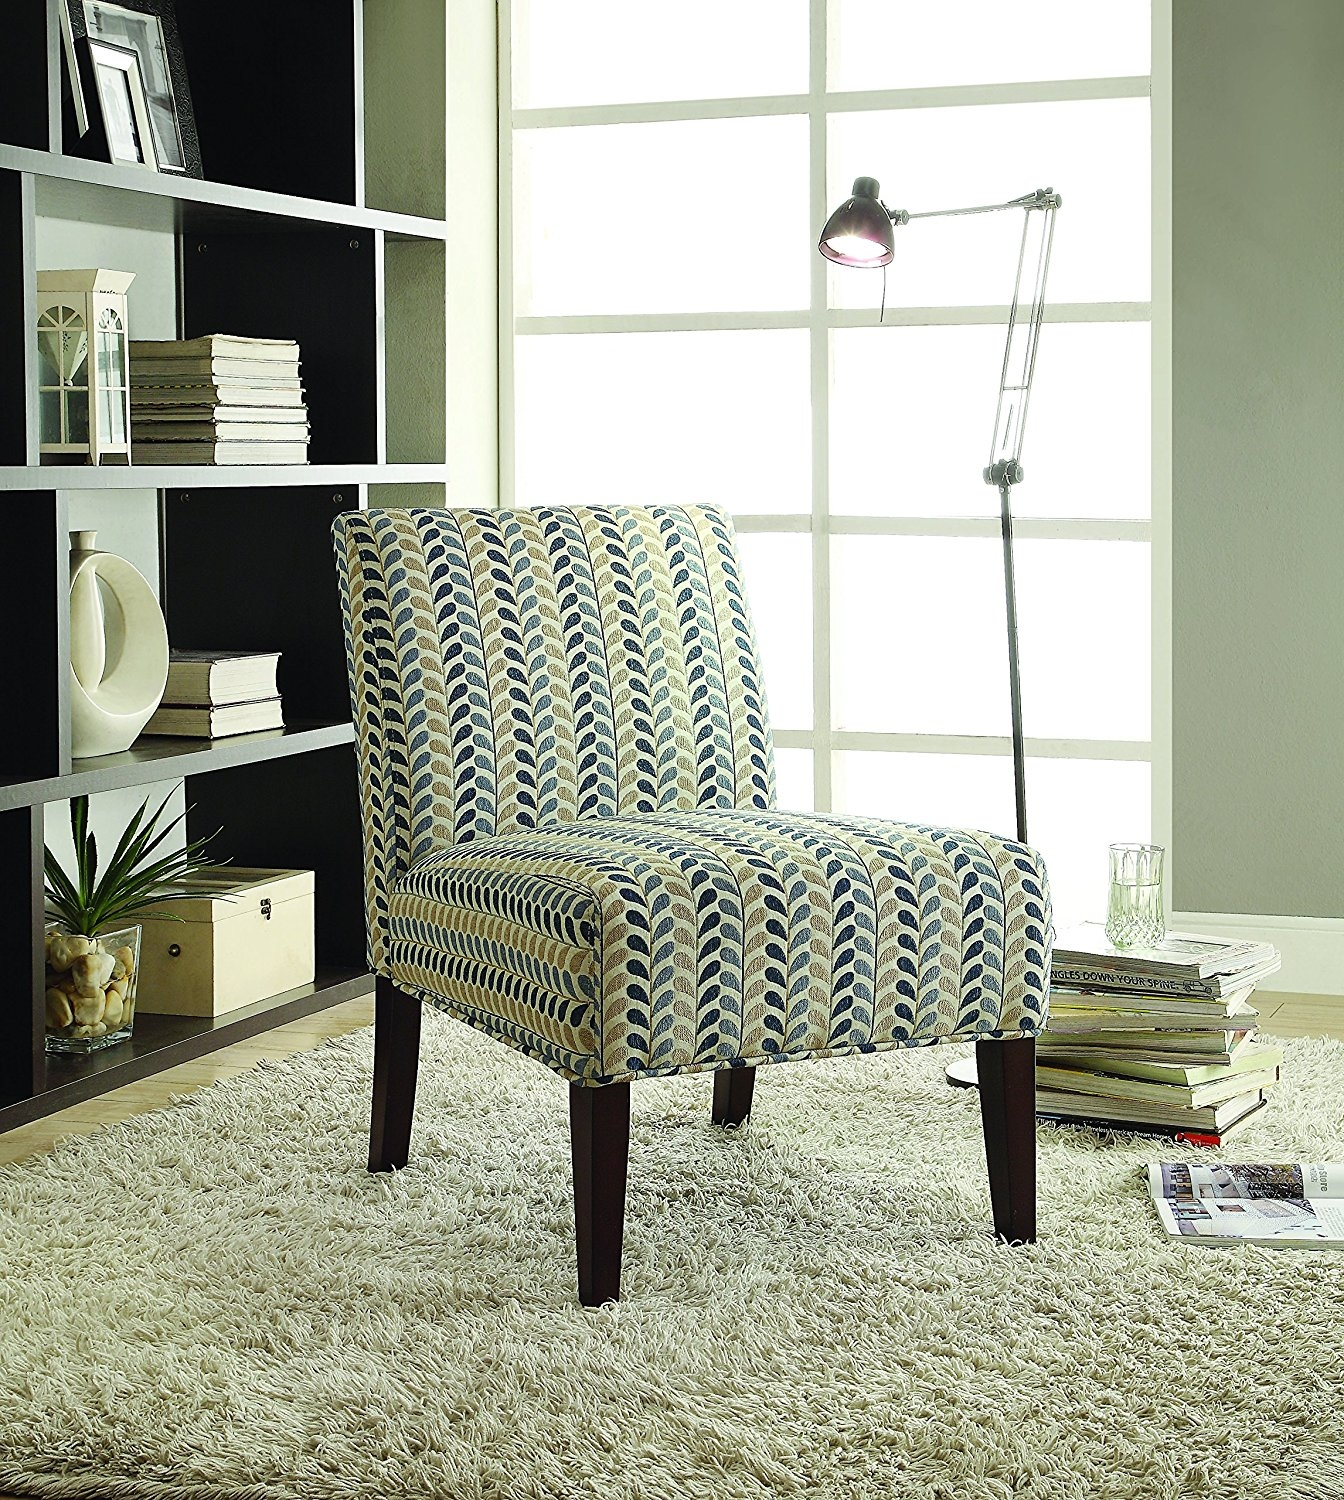 Coaster Home Furnishings 902059 Contemporary Leaf Armless Accent Chair, Blue and Beige by Coaster Home Furnishings